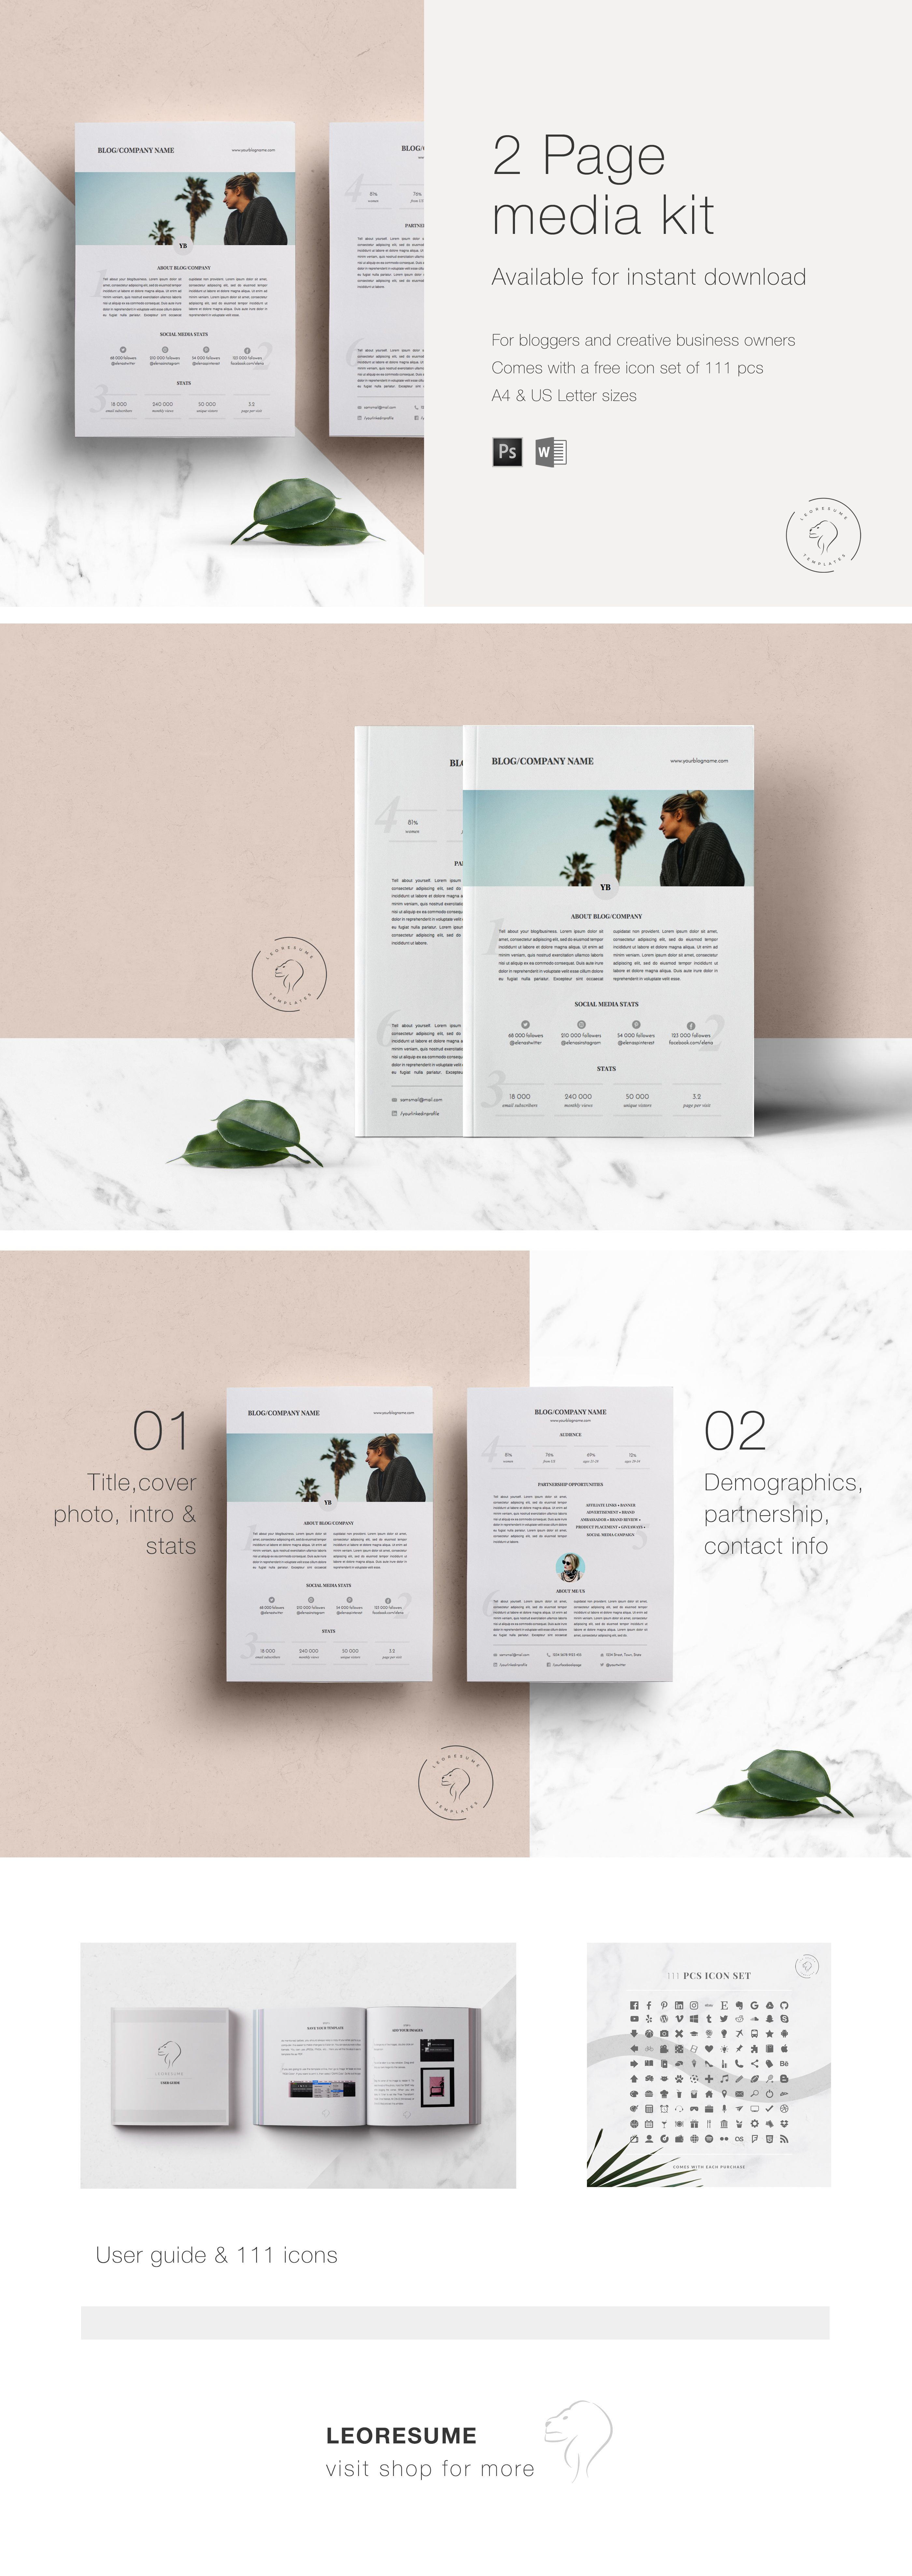 2 Page Media Kit Template for MS Word and Photoshop | Pitch Kit ...